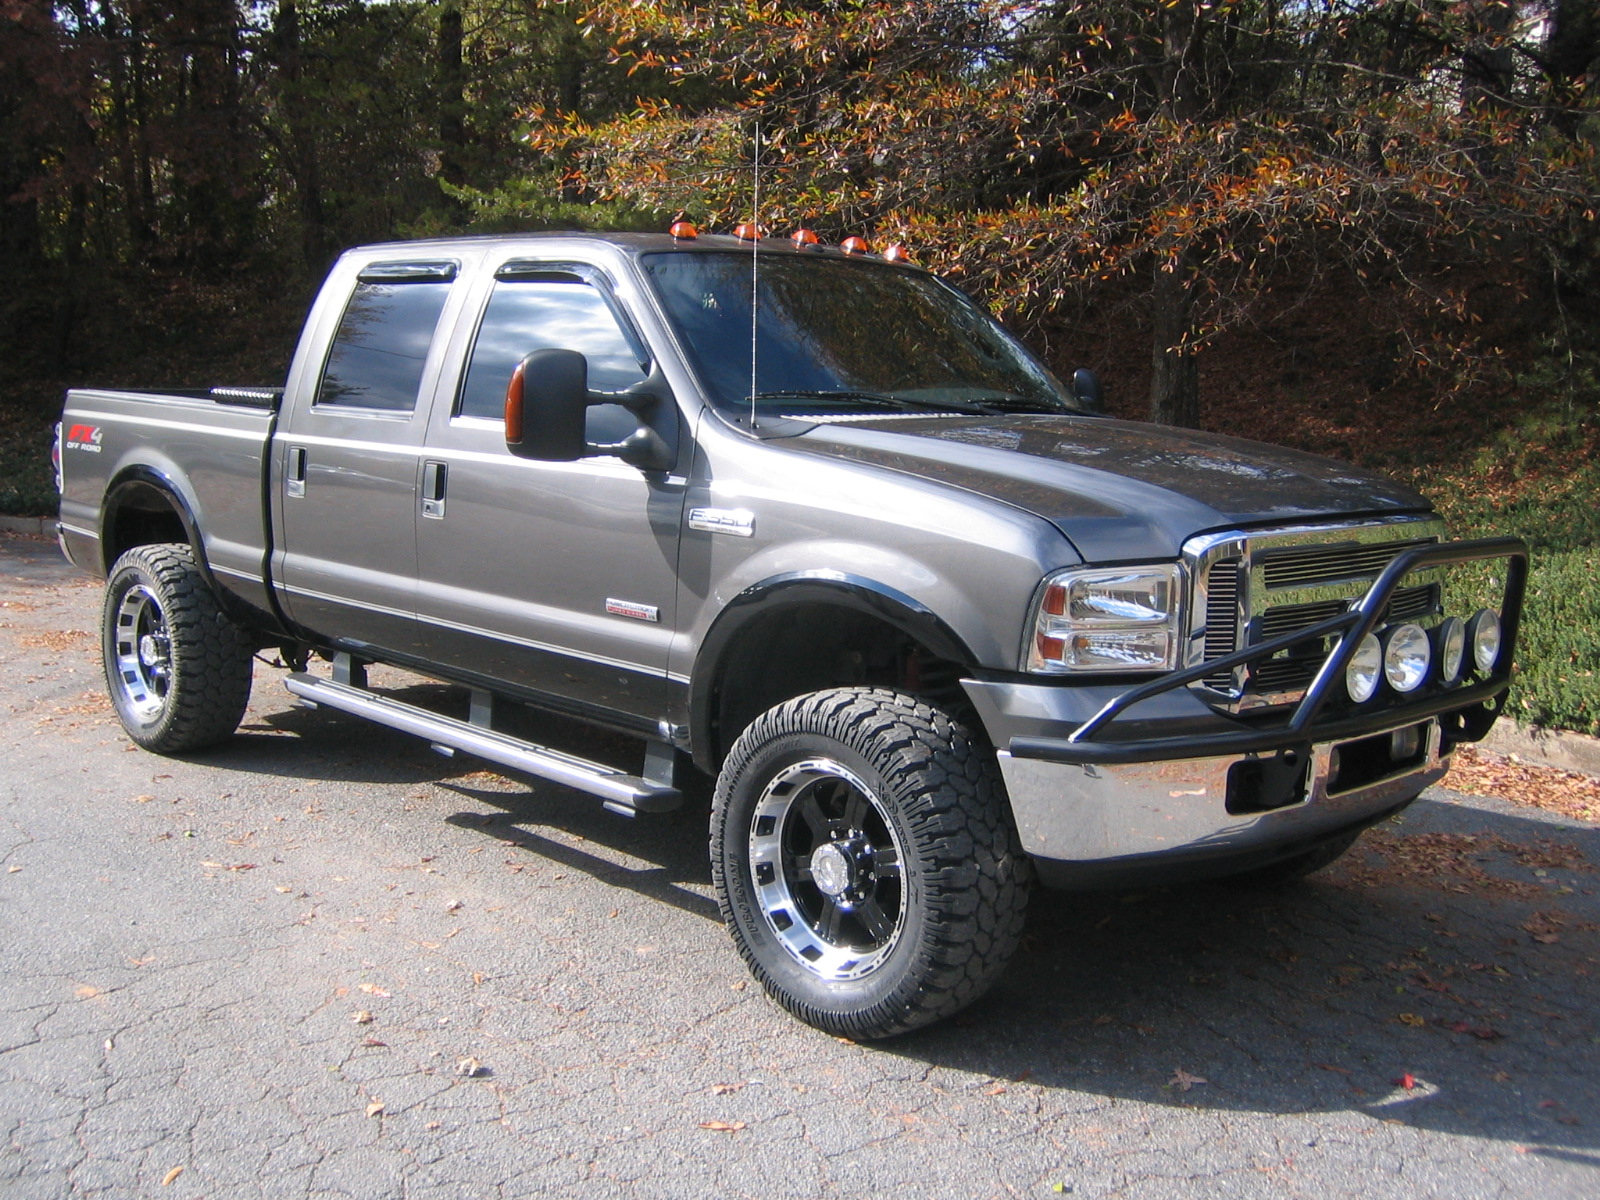 Ford F-350 Super Duty 2006 #8